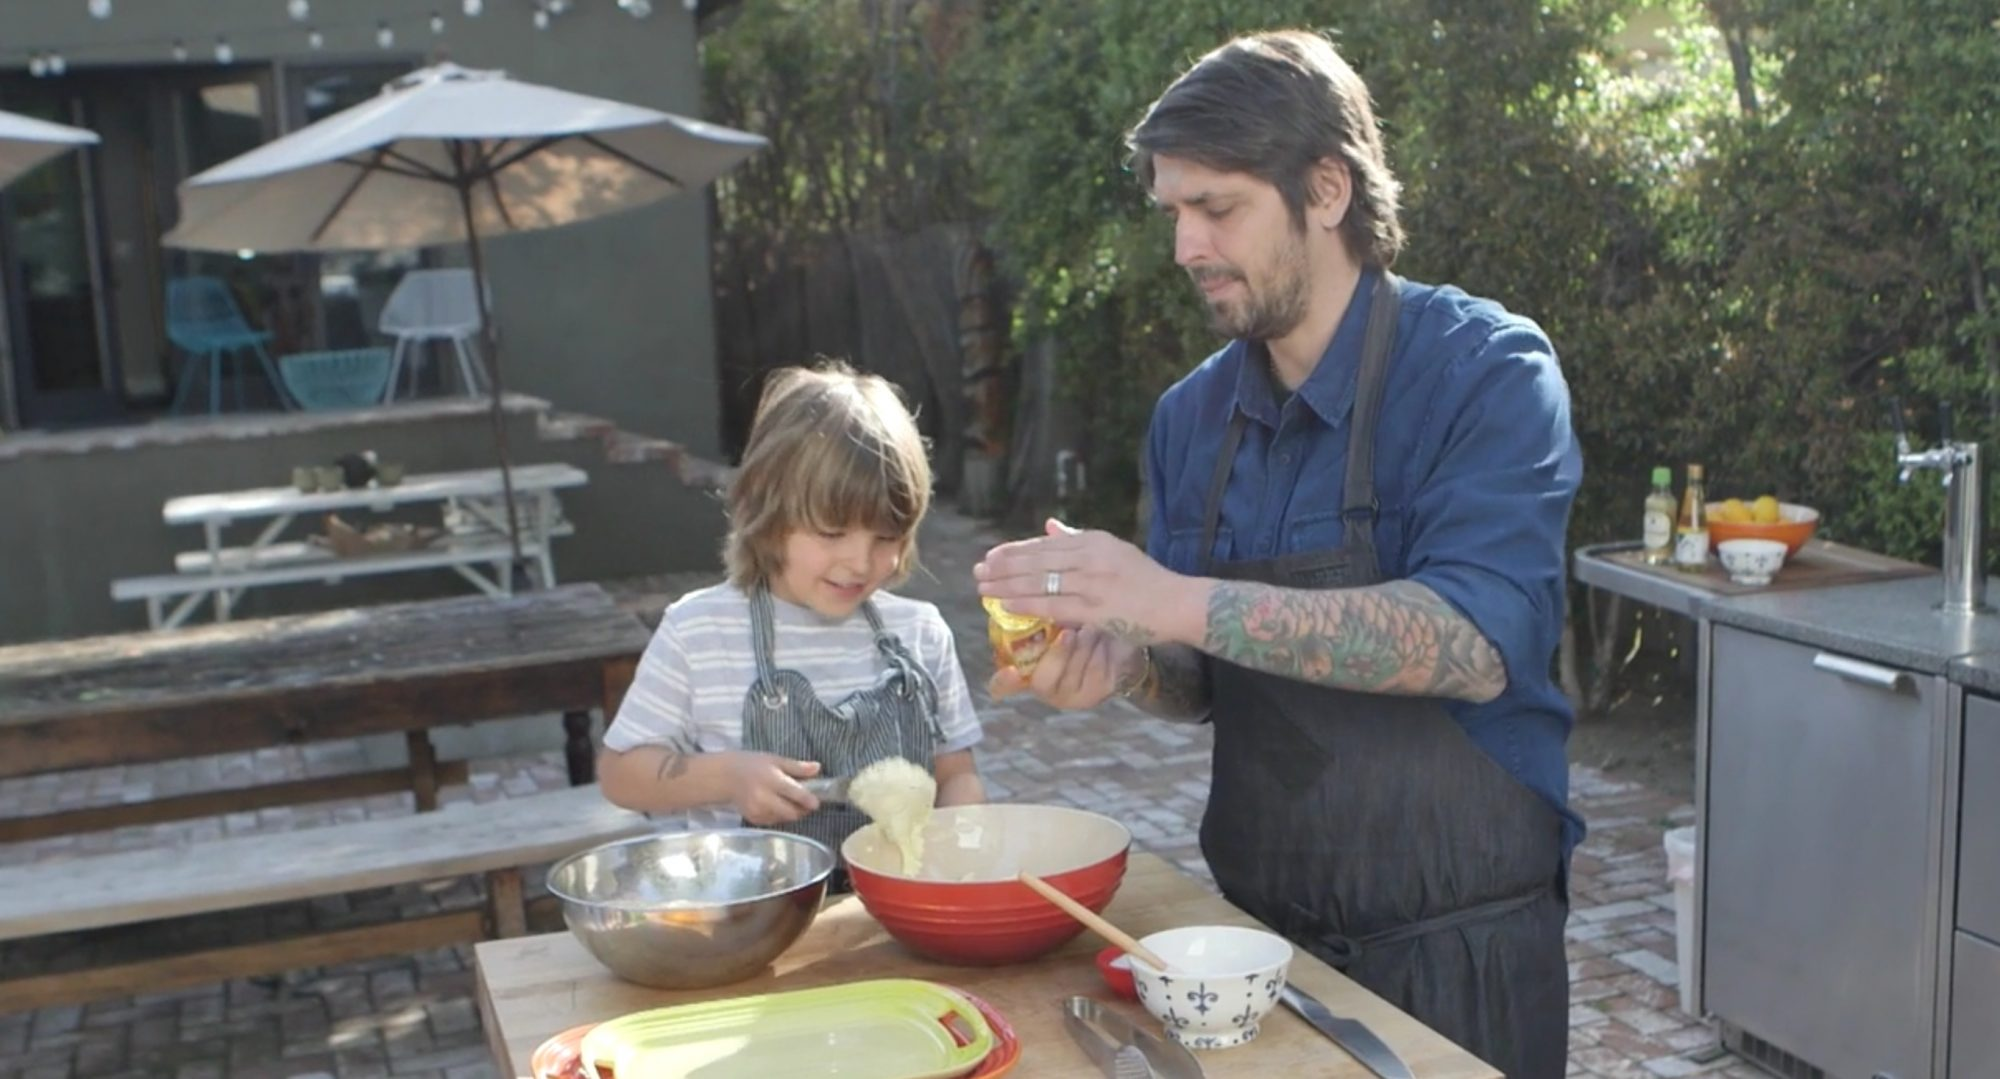 Ludo Lefebvre's Super Easy Bread Recipe Will Make You Feel Like an Expert [Video]